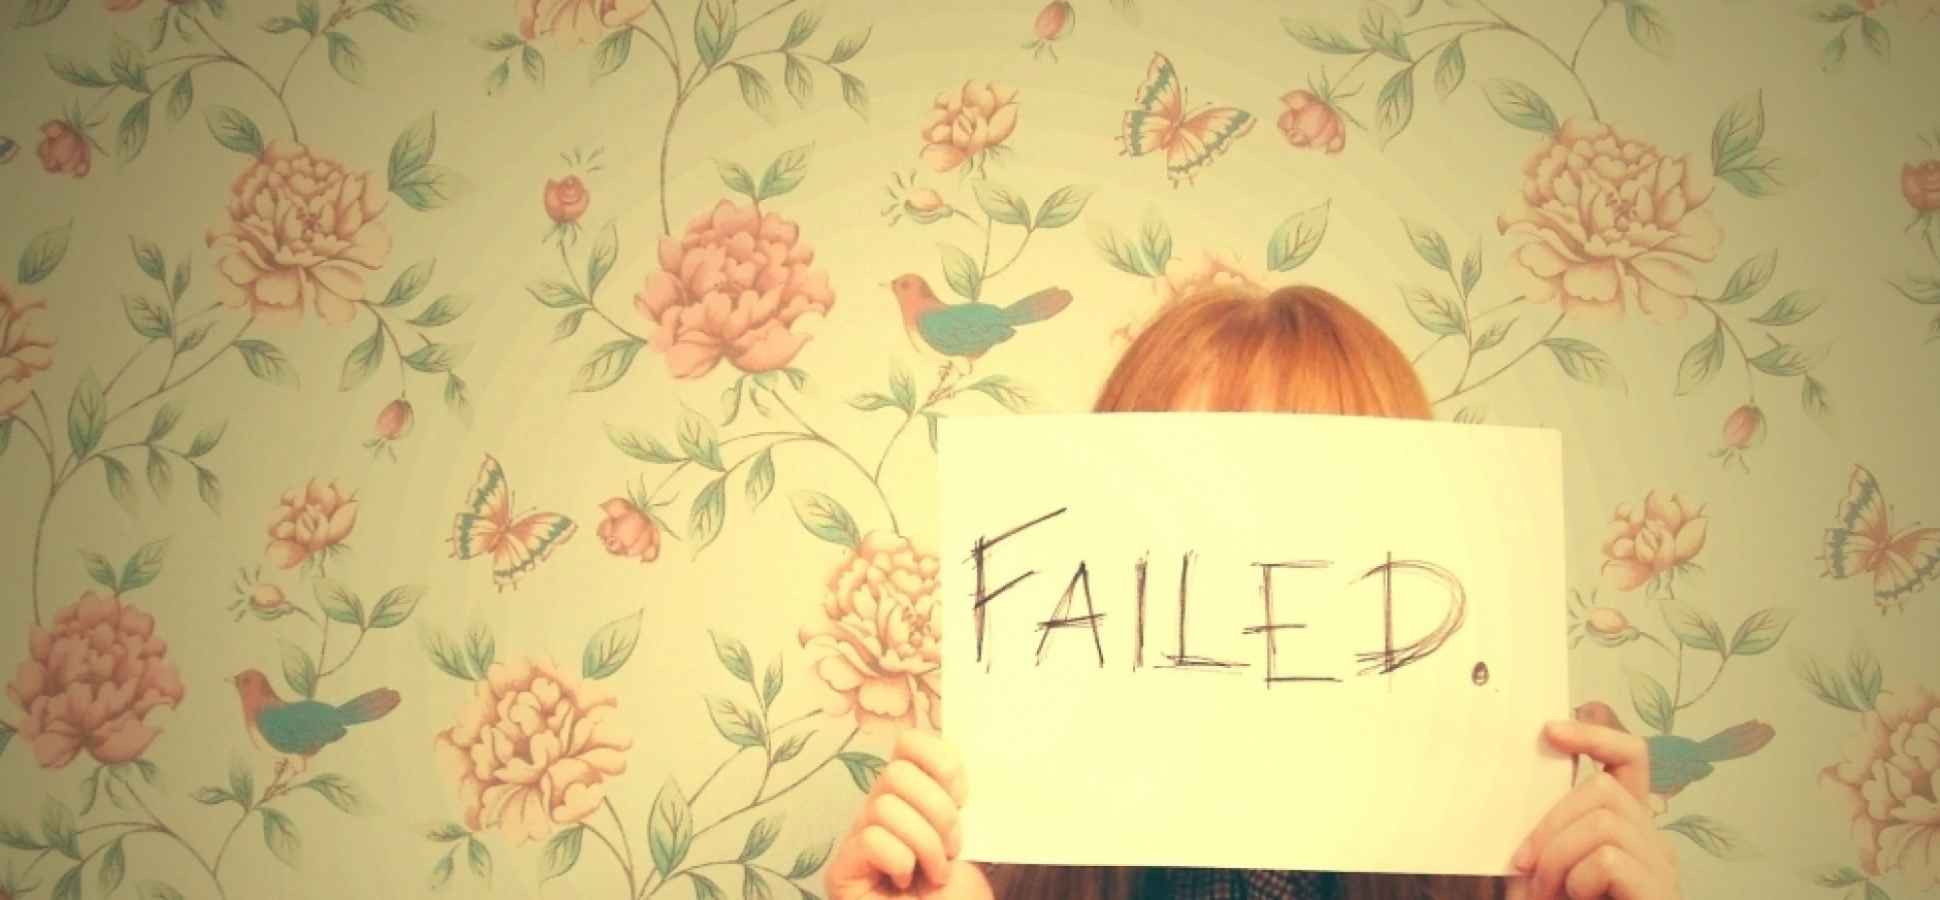 4 Surprisingly Common Epic Fails That Could Shutter Your Startup